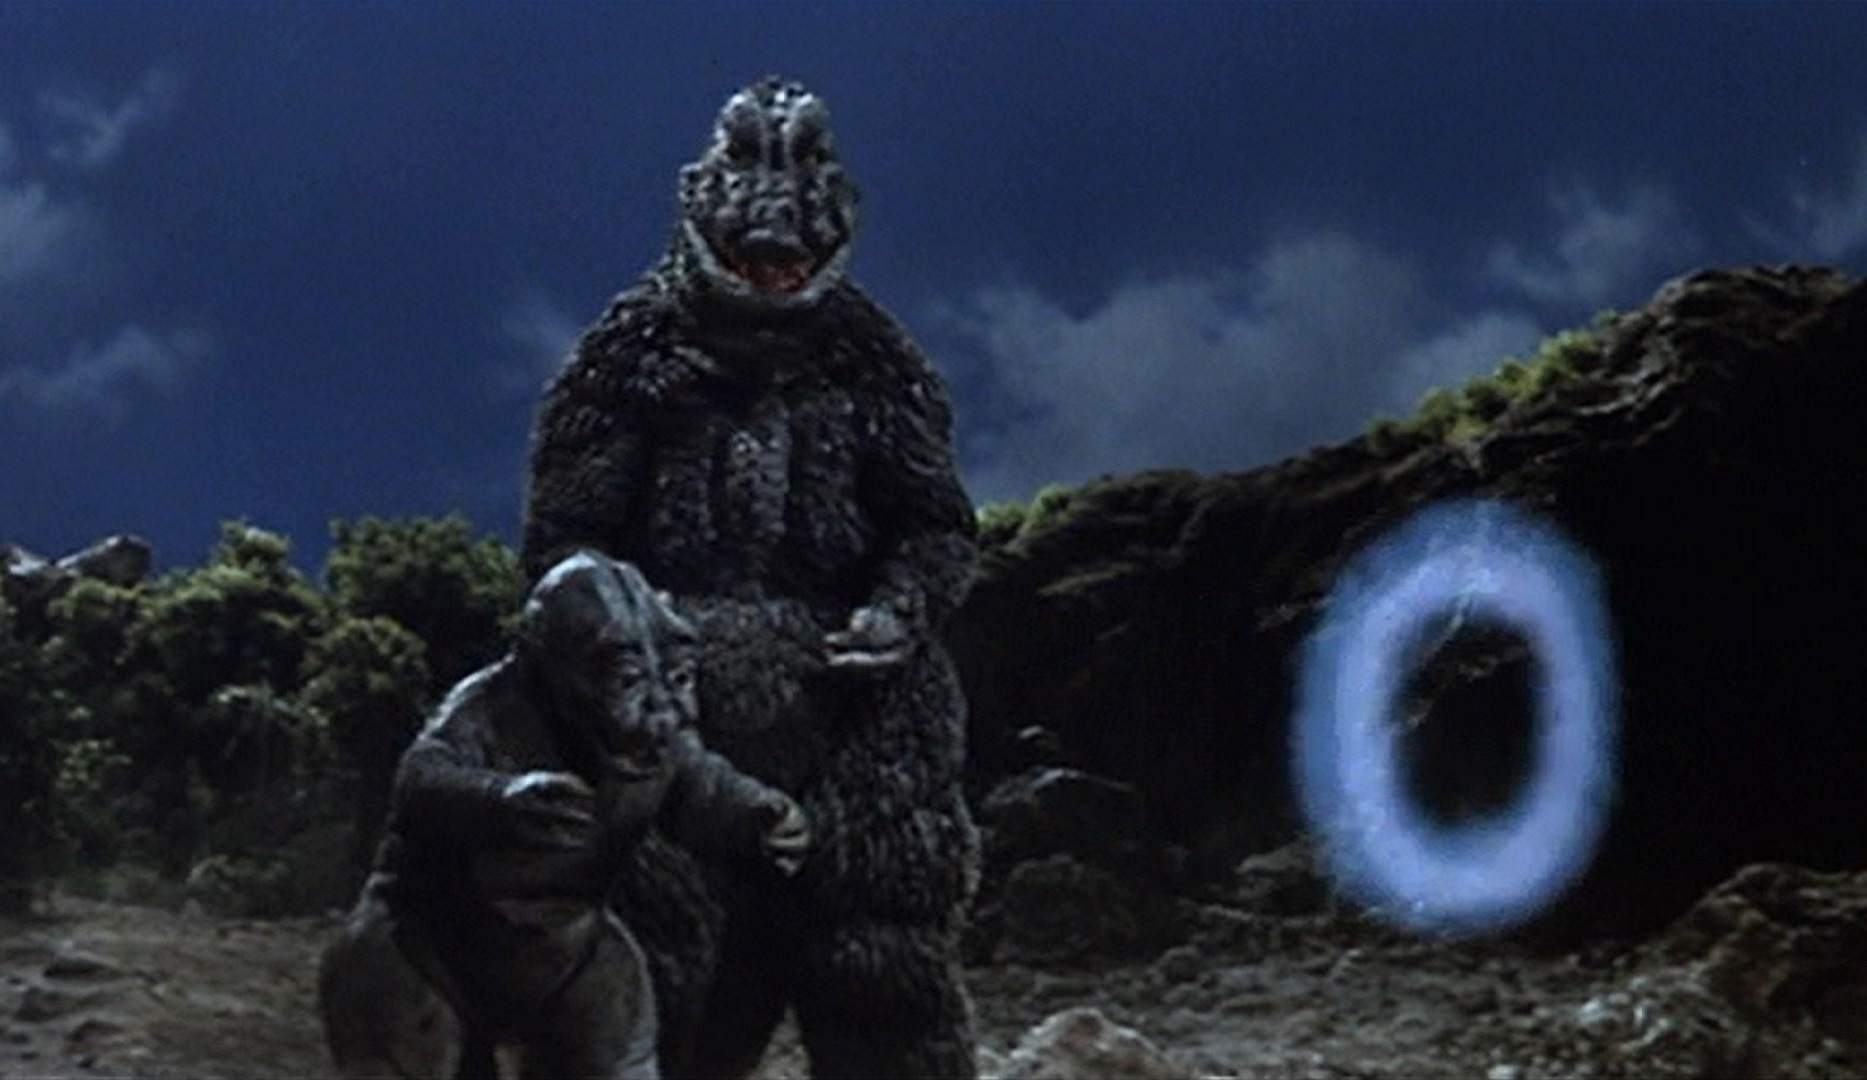 Godzilla with son Minya who finds he can only blow smoke rings instead of radioactive fire in Son of Godzilla (1968)